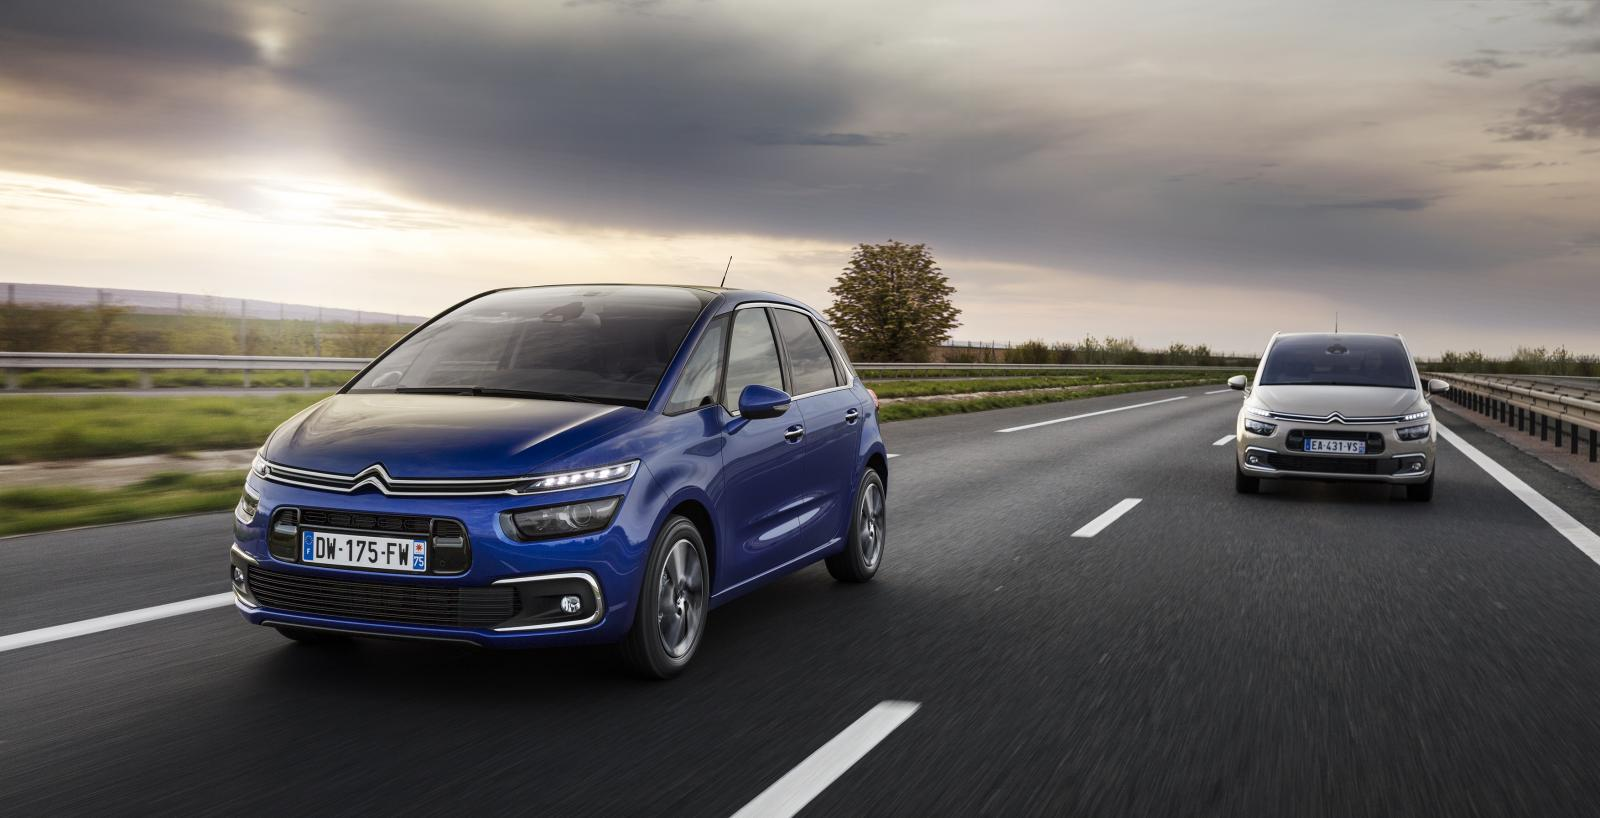 Grand C4 Picasso Shine του 2016 και Grand C4 Picasso του 2016